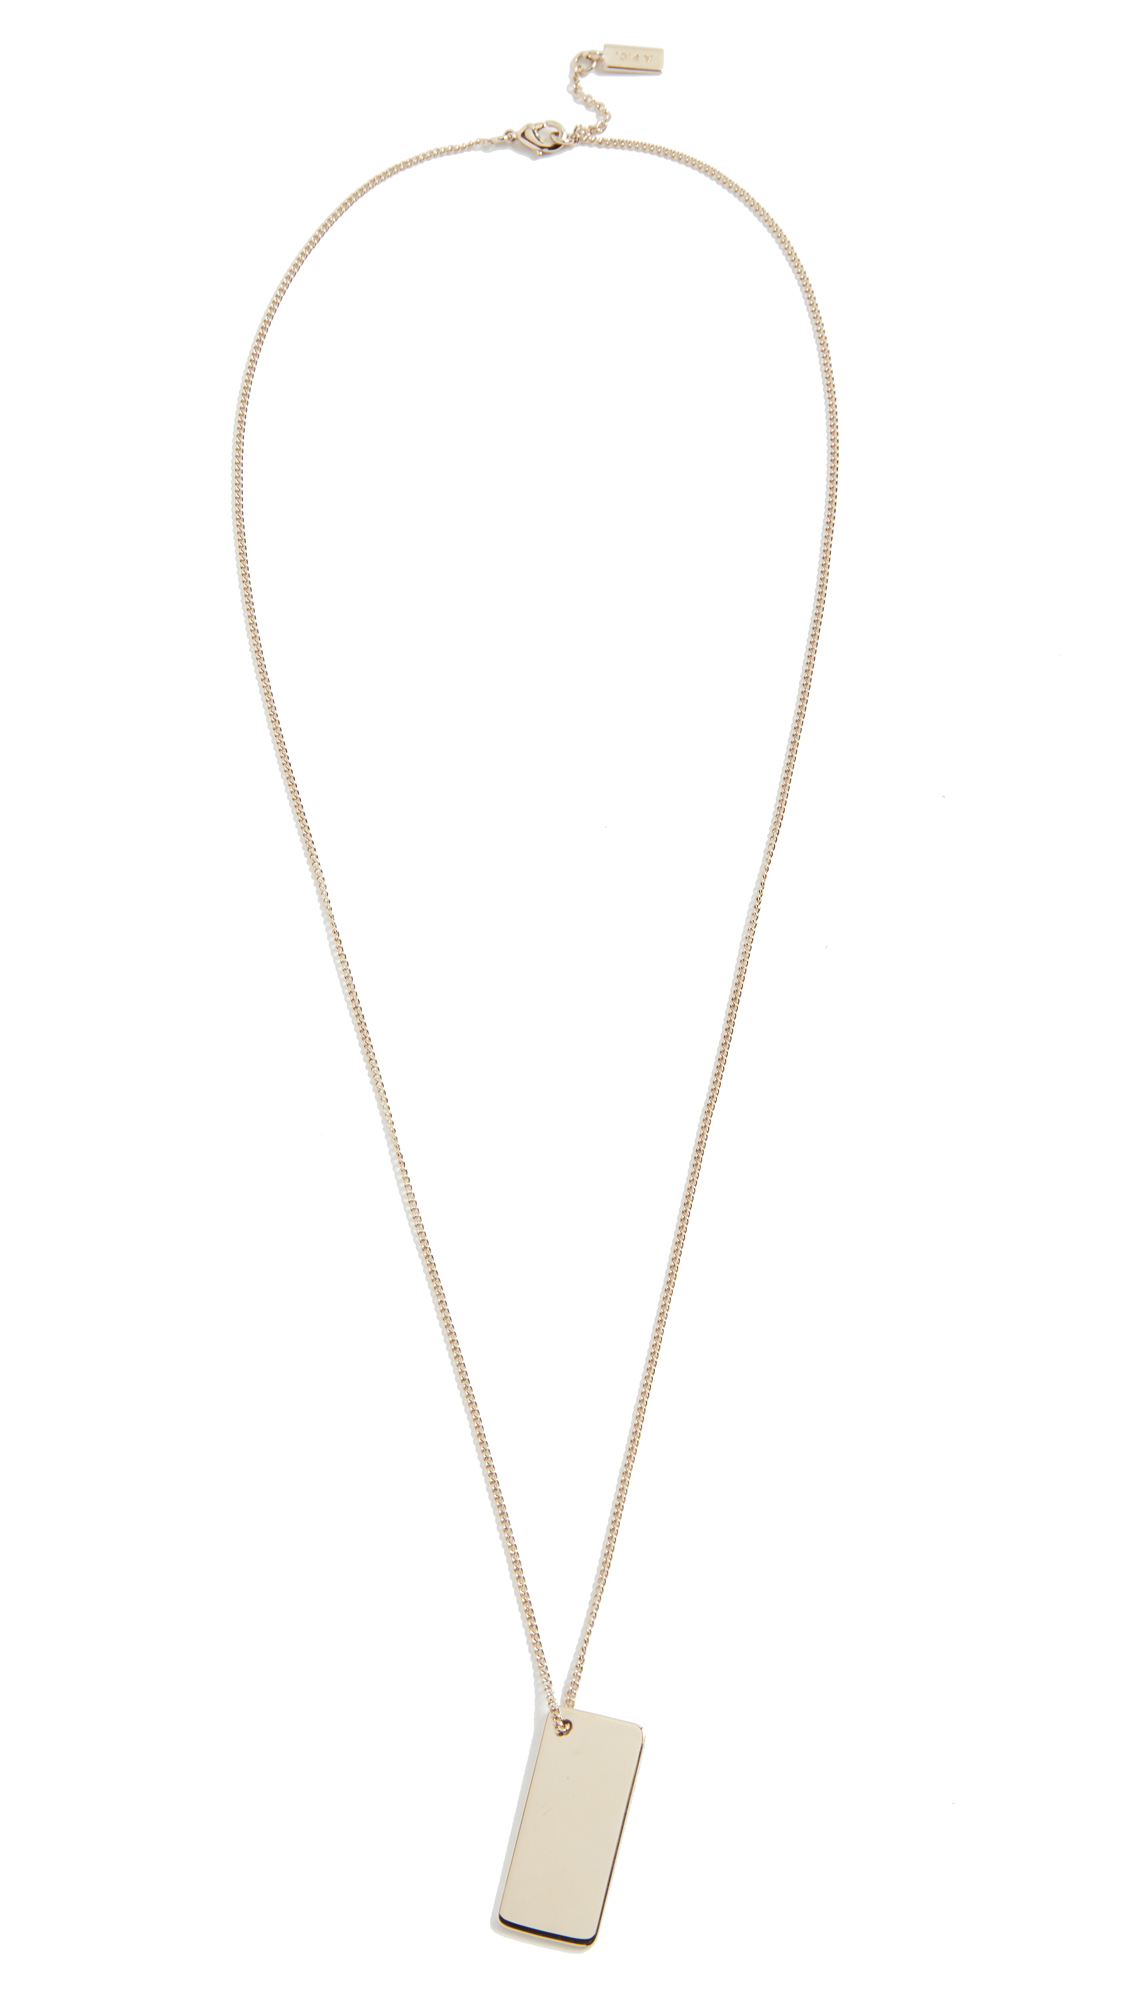 apc jewelry goldtone meacc p necklace raa a accessories women c marine wwuk